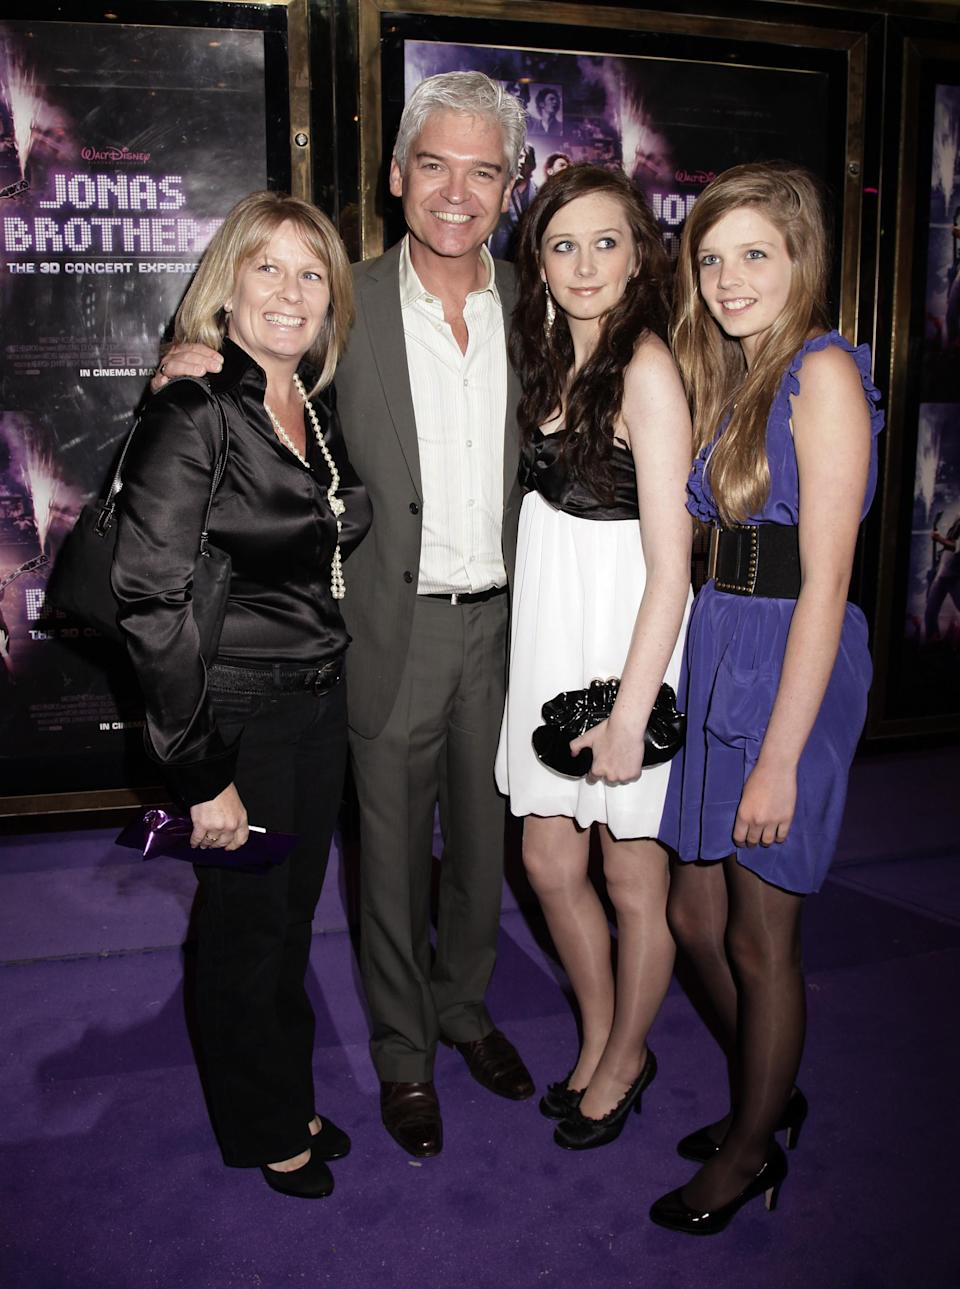 "File photo dated 13/05/09 of Phillip Schofield and family arriving for the premiere of 'Jonas Brothers: The 3D Concert Experience' at the Empire cinema in Leicester Square, London. Phillip Schofield has said he is ""coming to terms with the fact I am gay"" in a statement on Instagram."